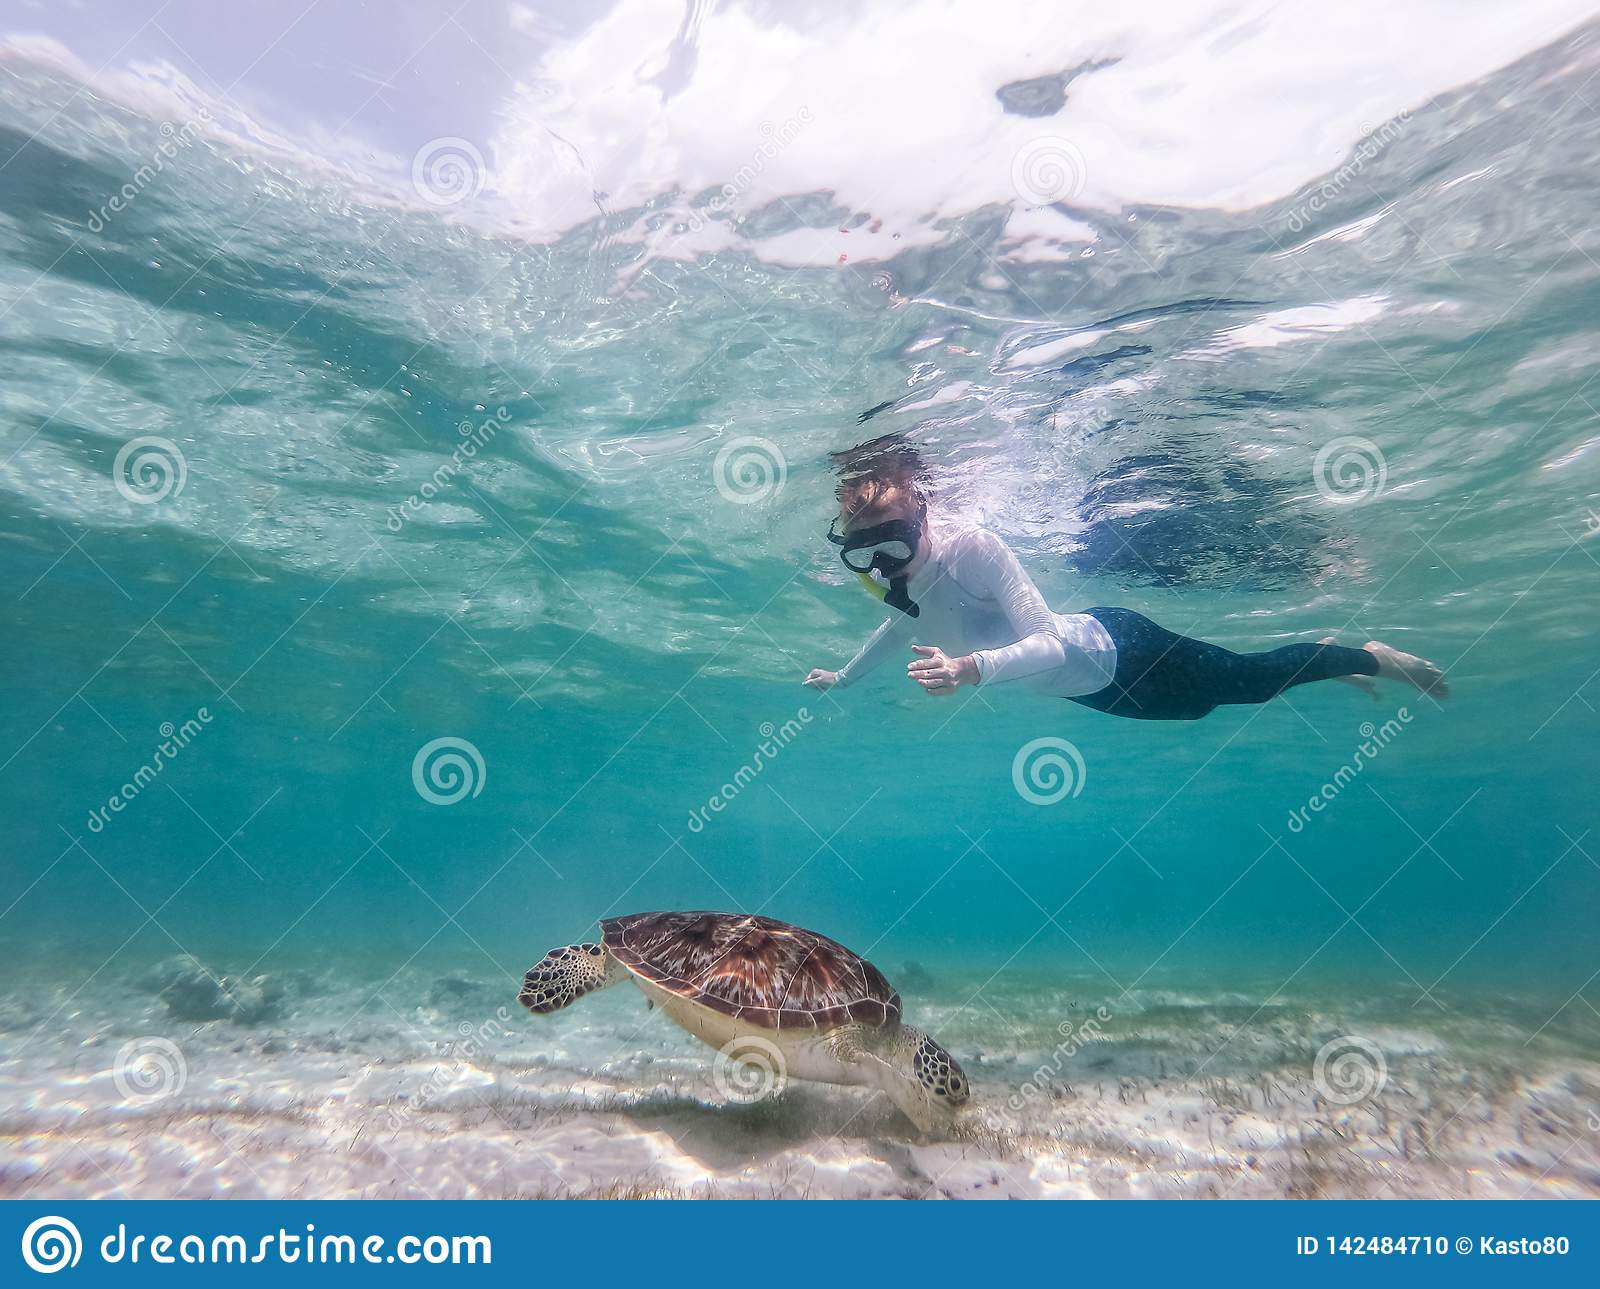 Woman on vacations wearing snokeling mask swimming with sea turtle in turquoise blue water of Gili islands, Indonesia